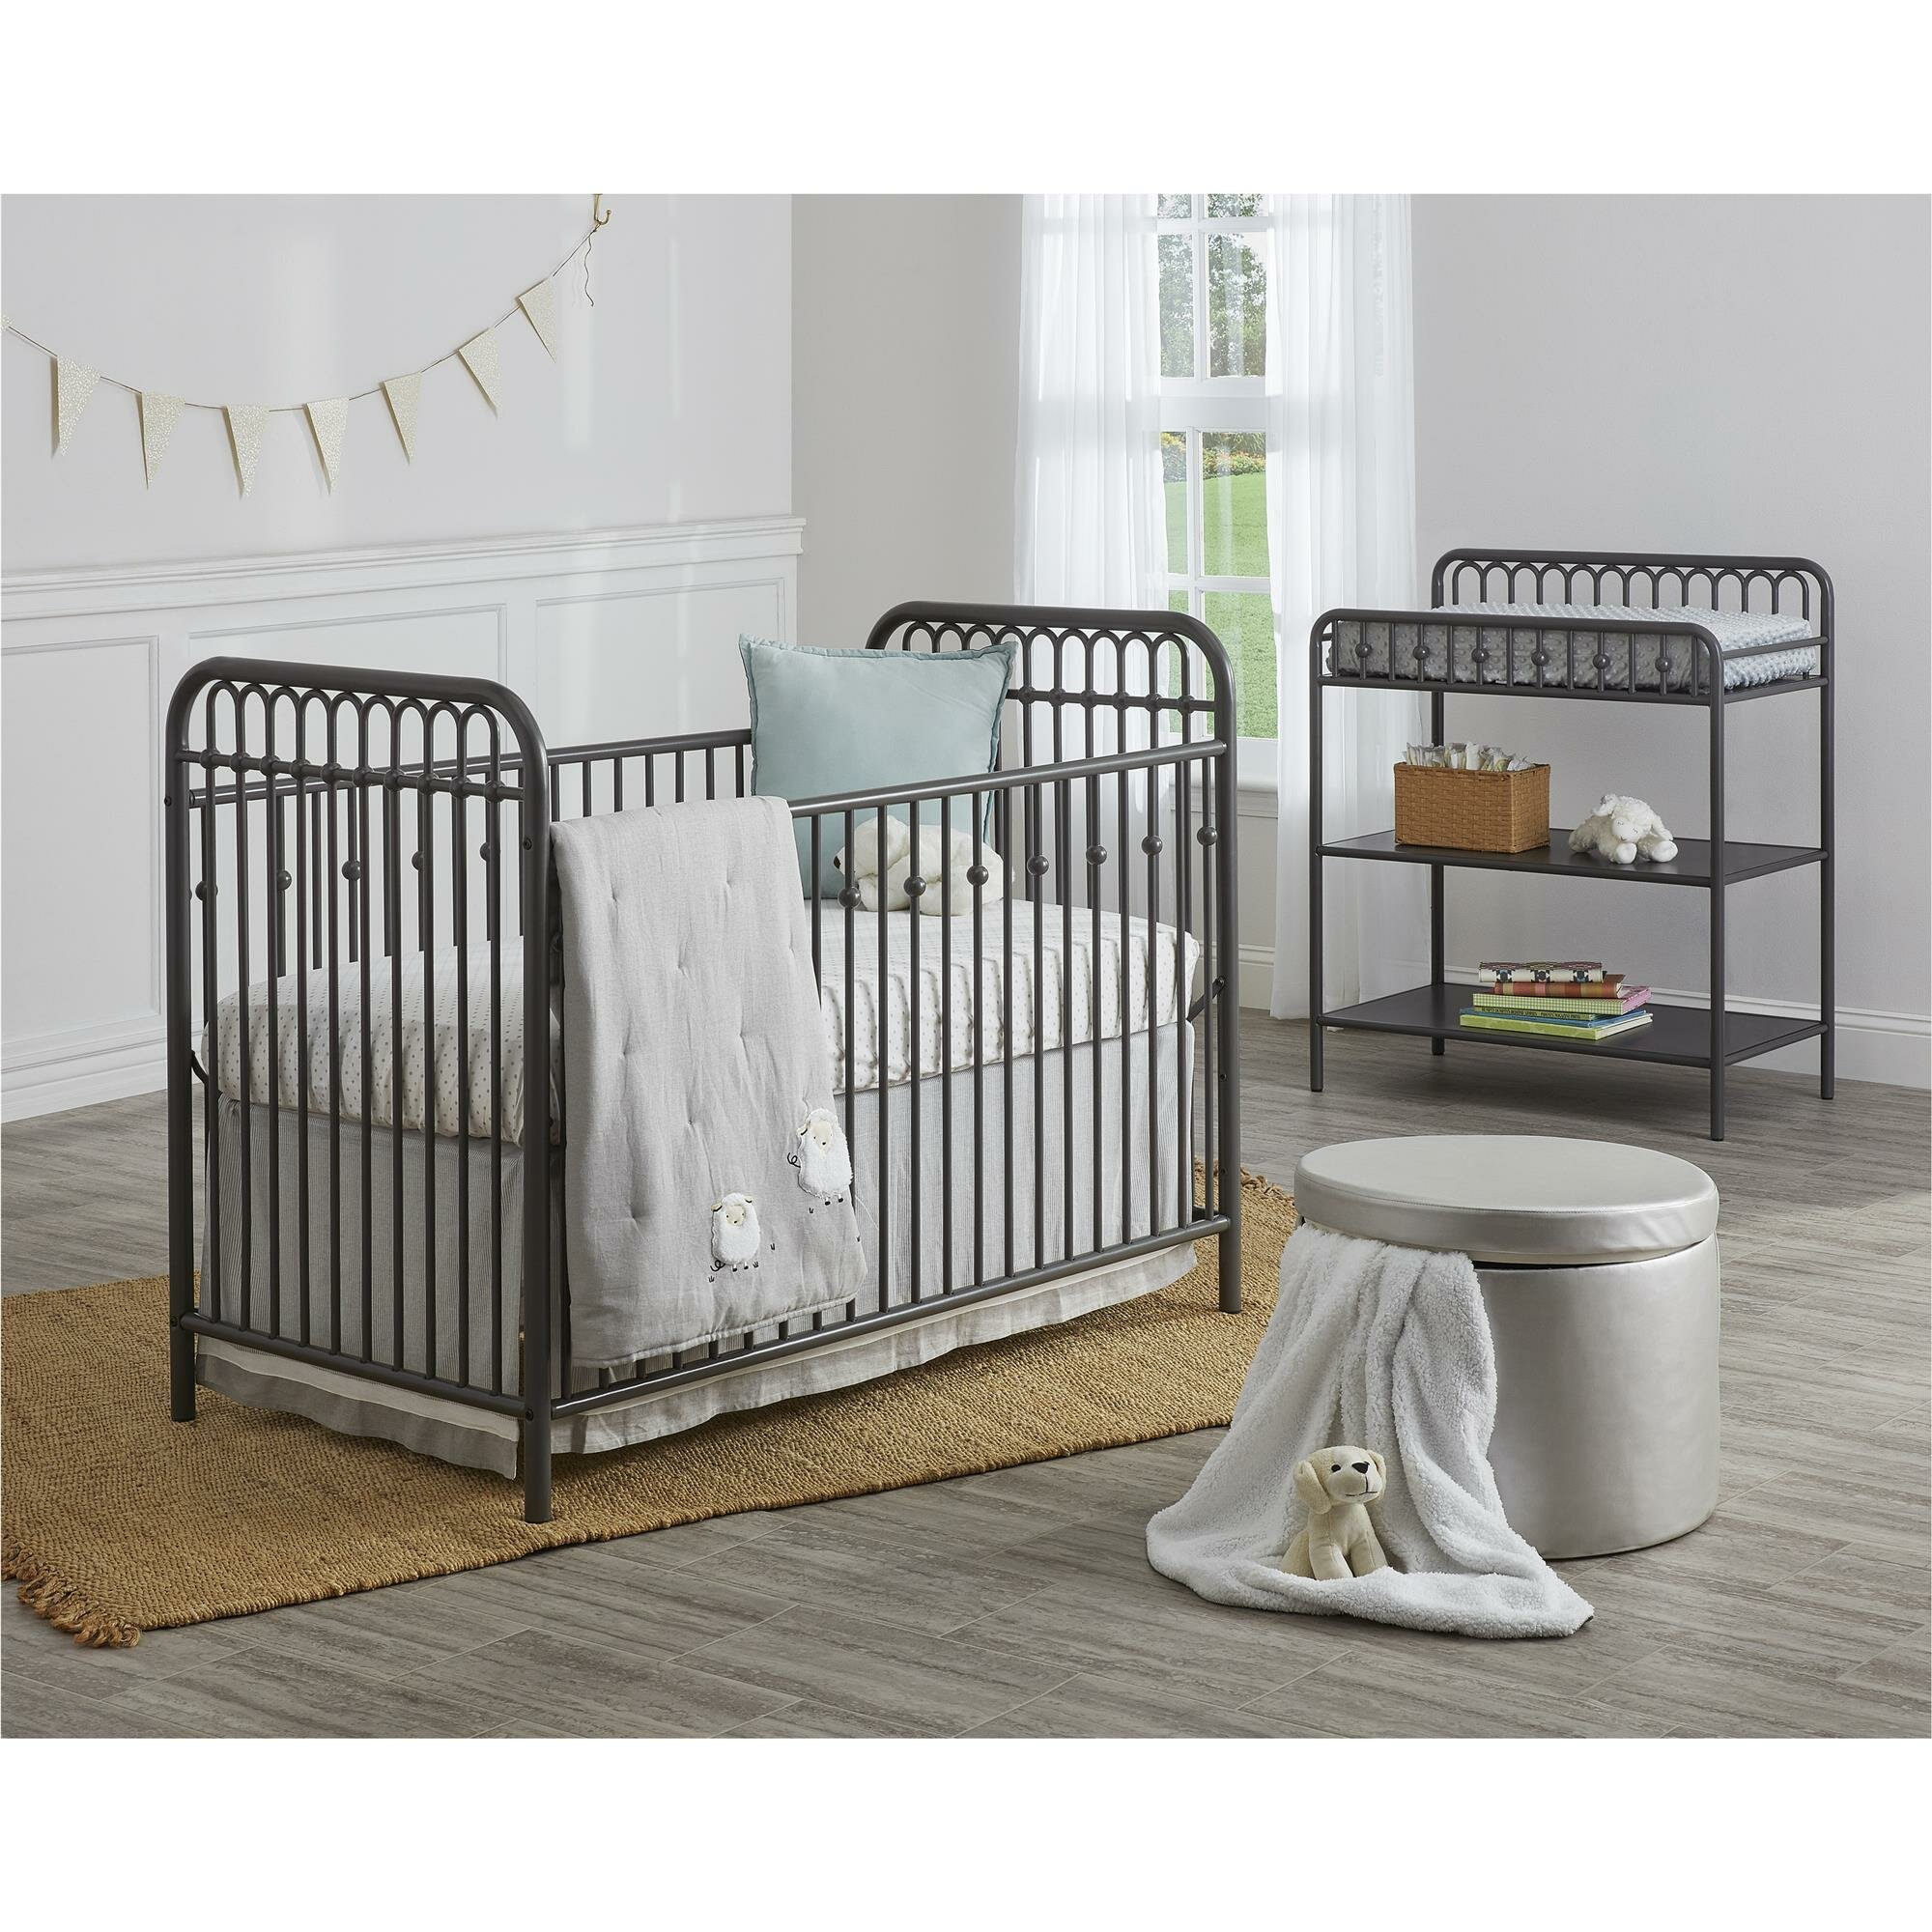 9ddb2c50c8 Little Seeds Monarch Hill Ivy 2 Piece Crib Set   Reviews